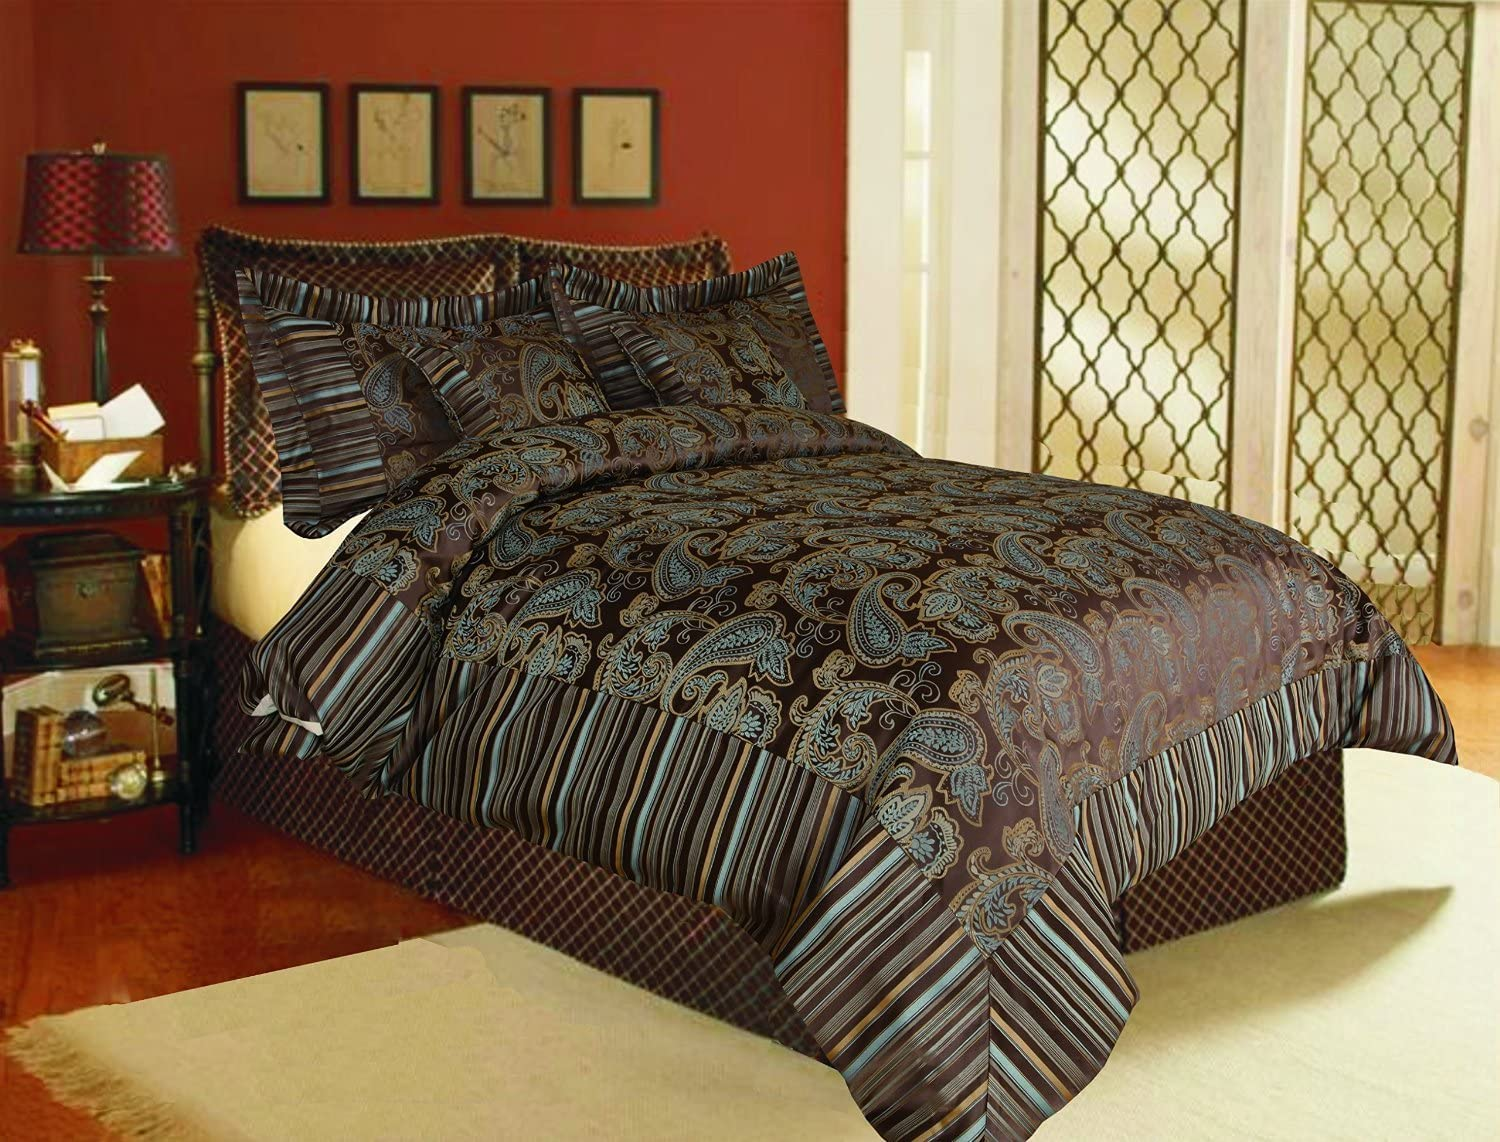 Tache Home Fashion Eastern High quality new Indefinitely Comforter Spring Heavyweight Chenille